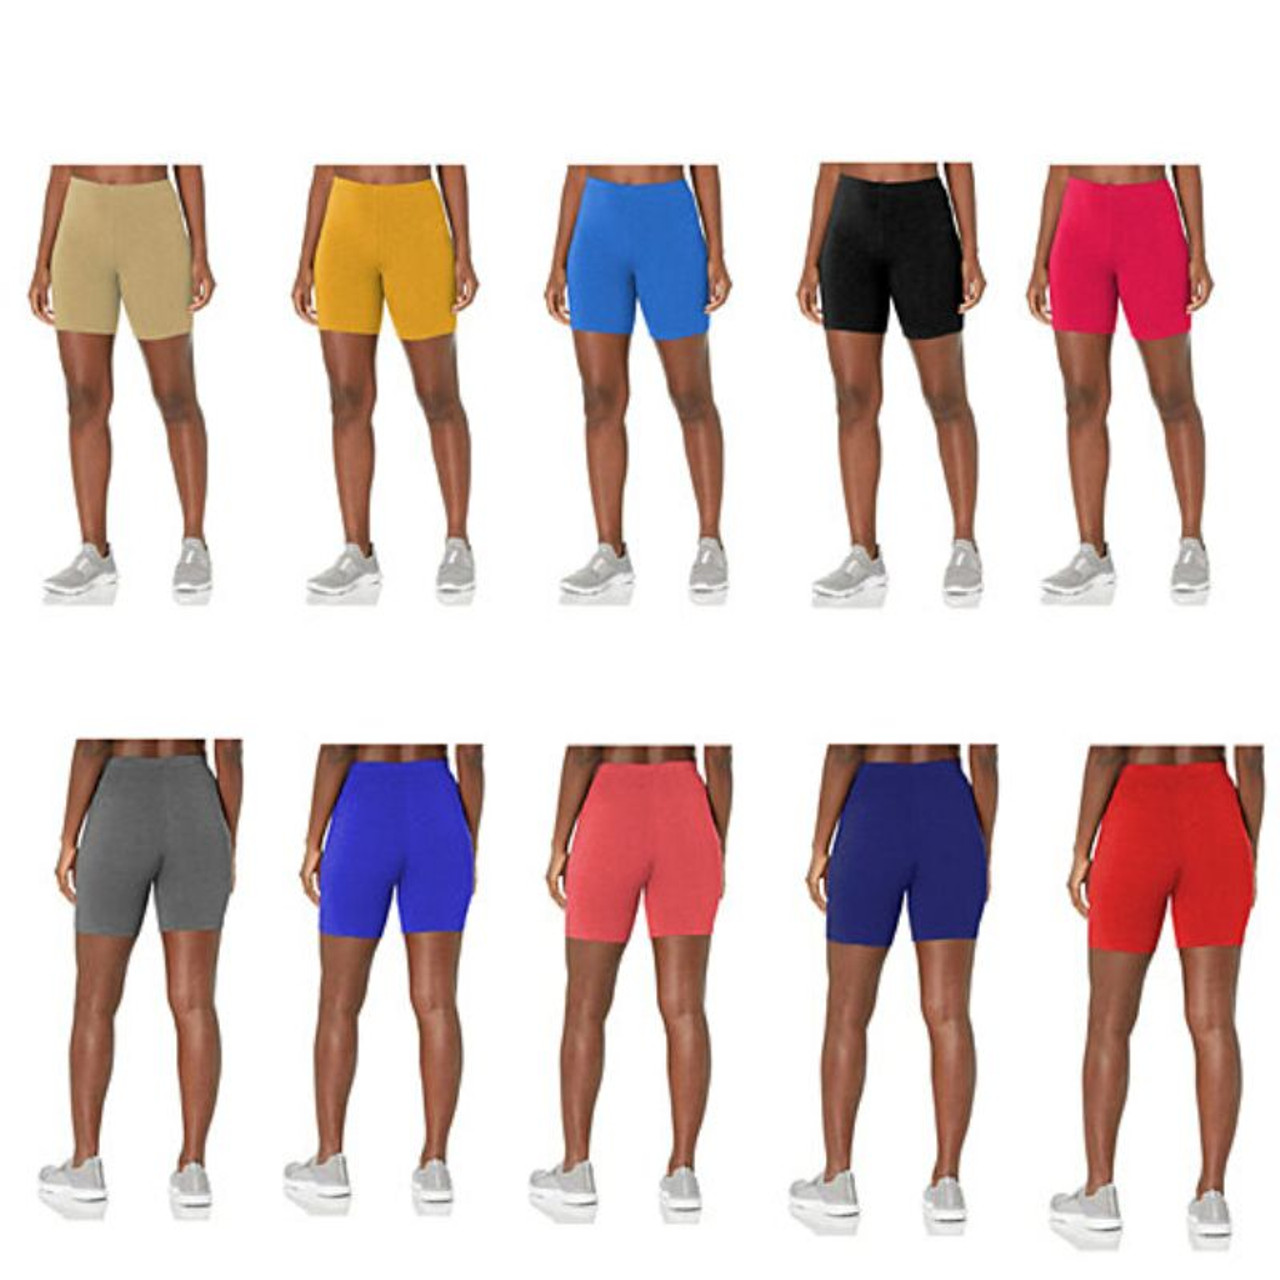 Women's Solid Slim Fit Comfy Stretchy Elastic Waistband Biker Shorts - 5 Pack